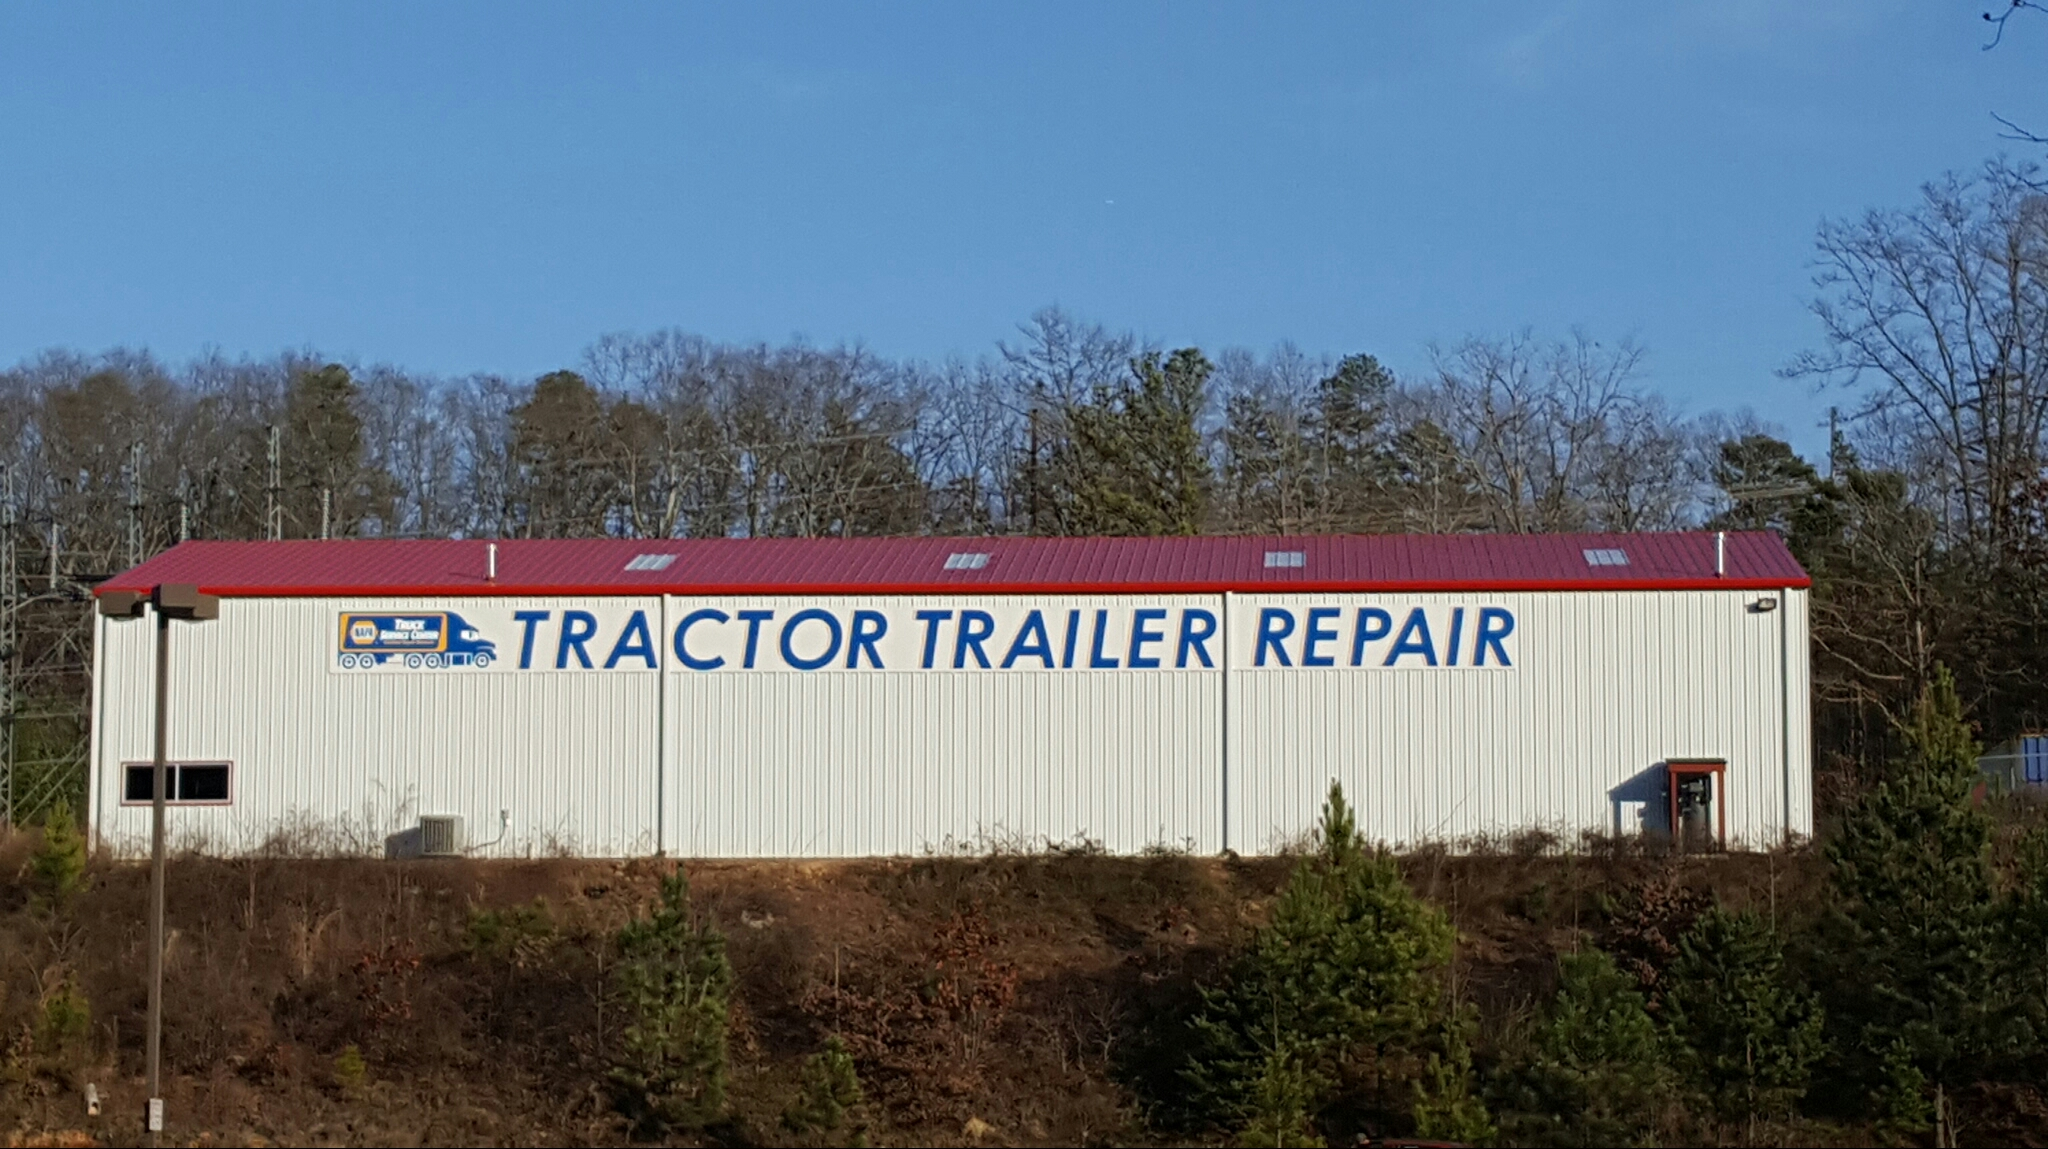 Tractor Trailer Repair Company